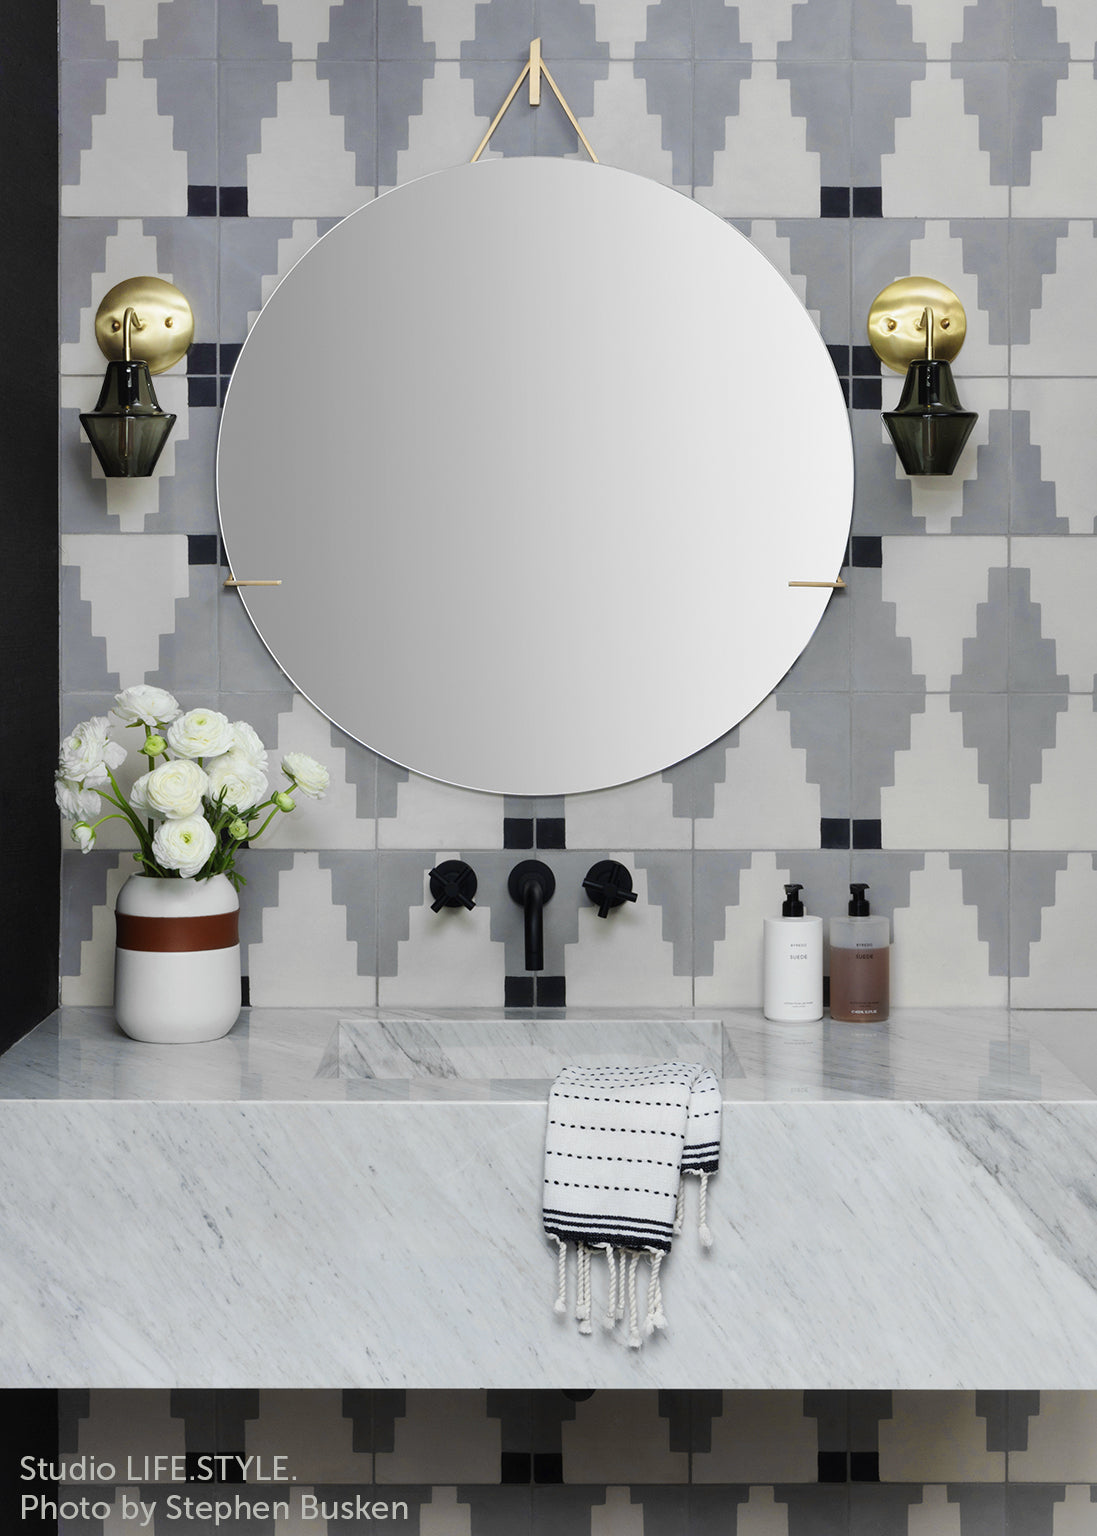 Bathroom vanity with Cumberland Sconces by Studio DUNN interior by Studio LIFE.STYLE. photo by Stephen Busken